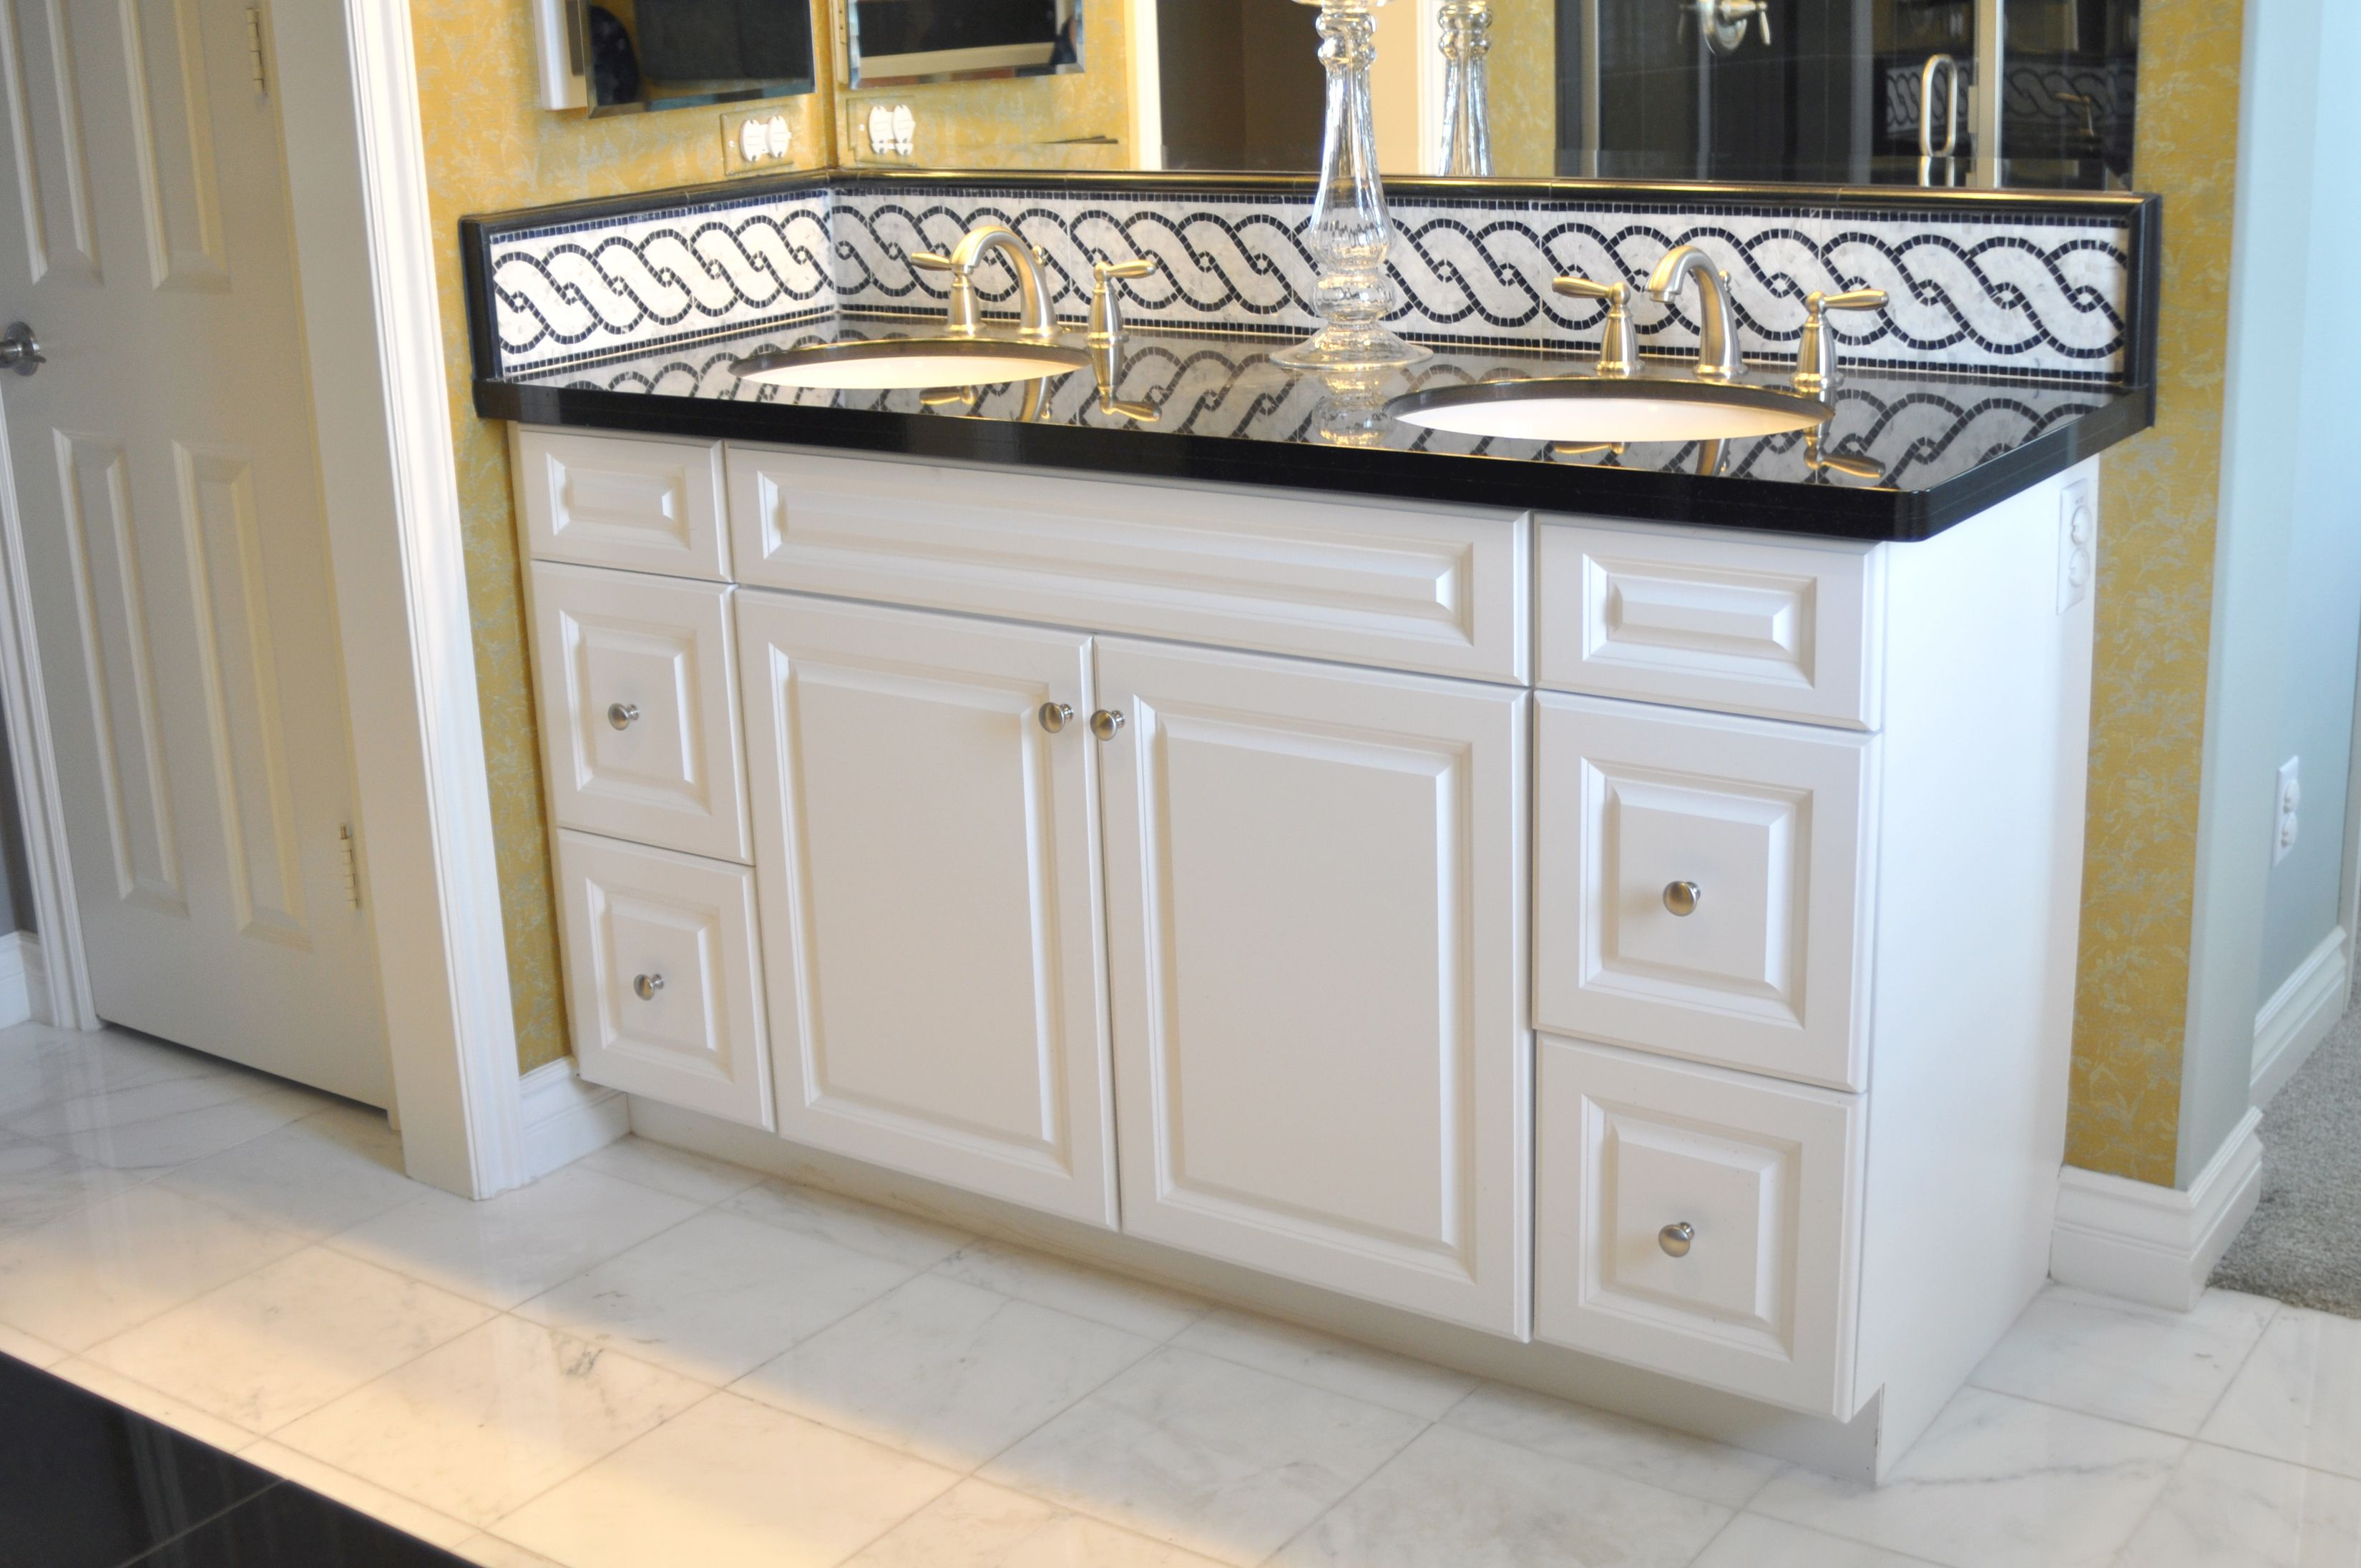 Thermofoil bathroom vanities - Hamilton Thermofoil Door Style With A White Finish Featured In A Bathroom